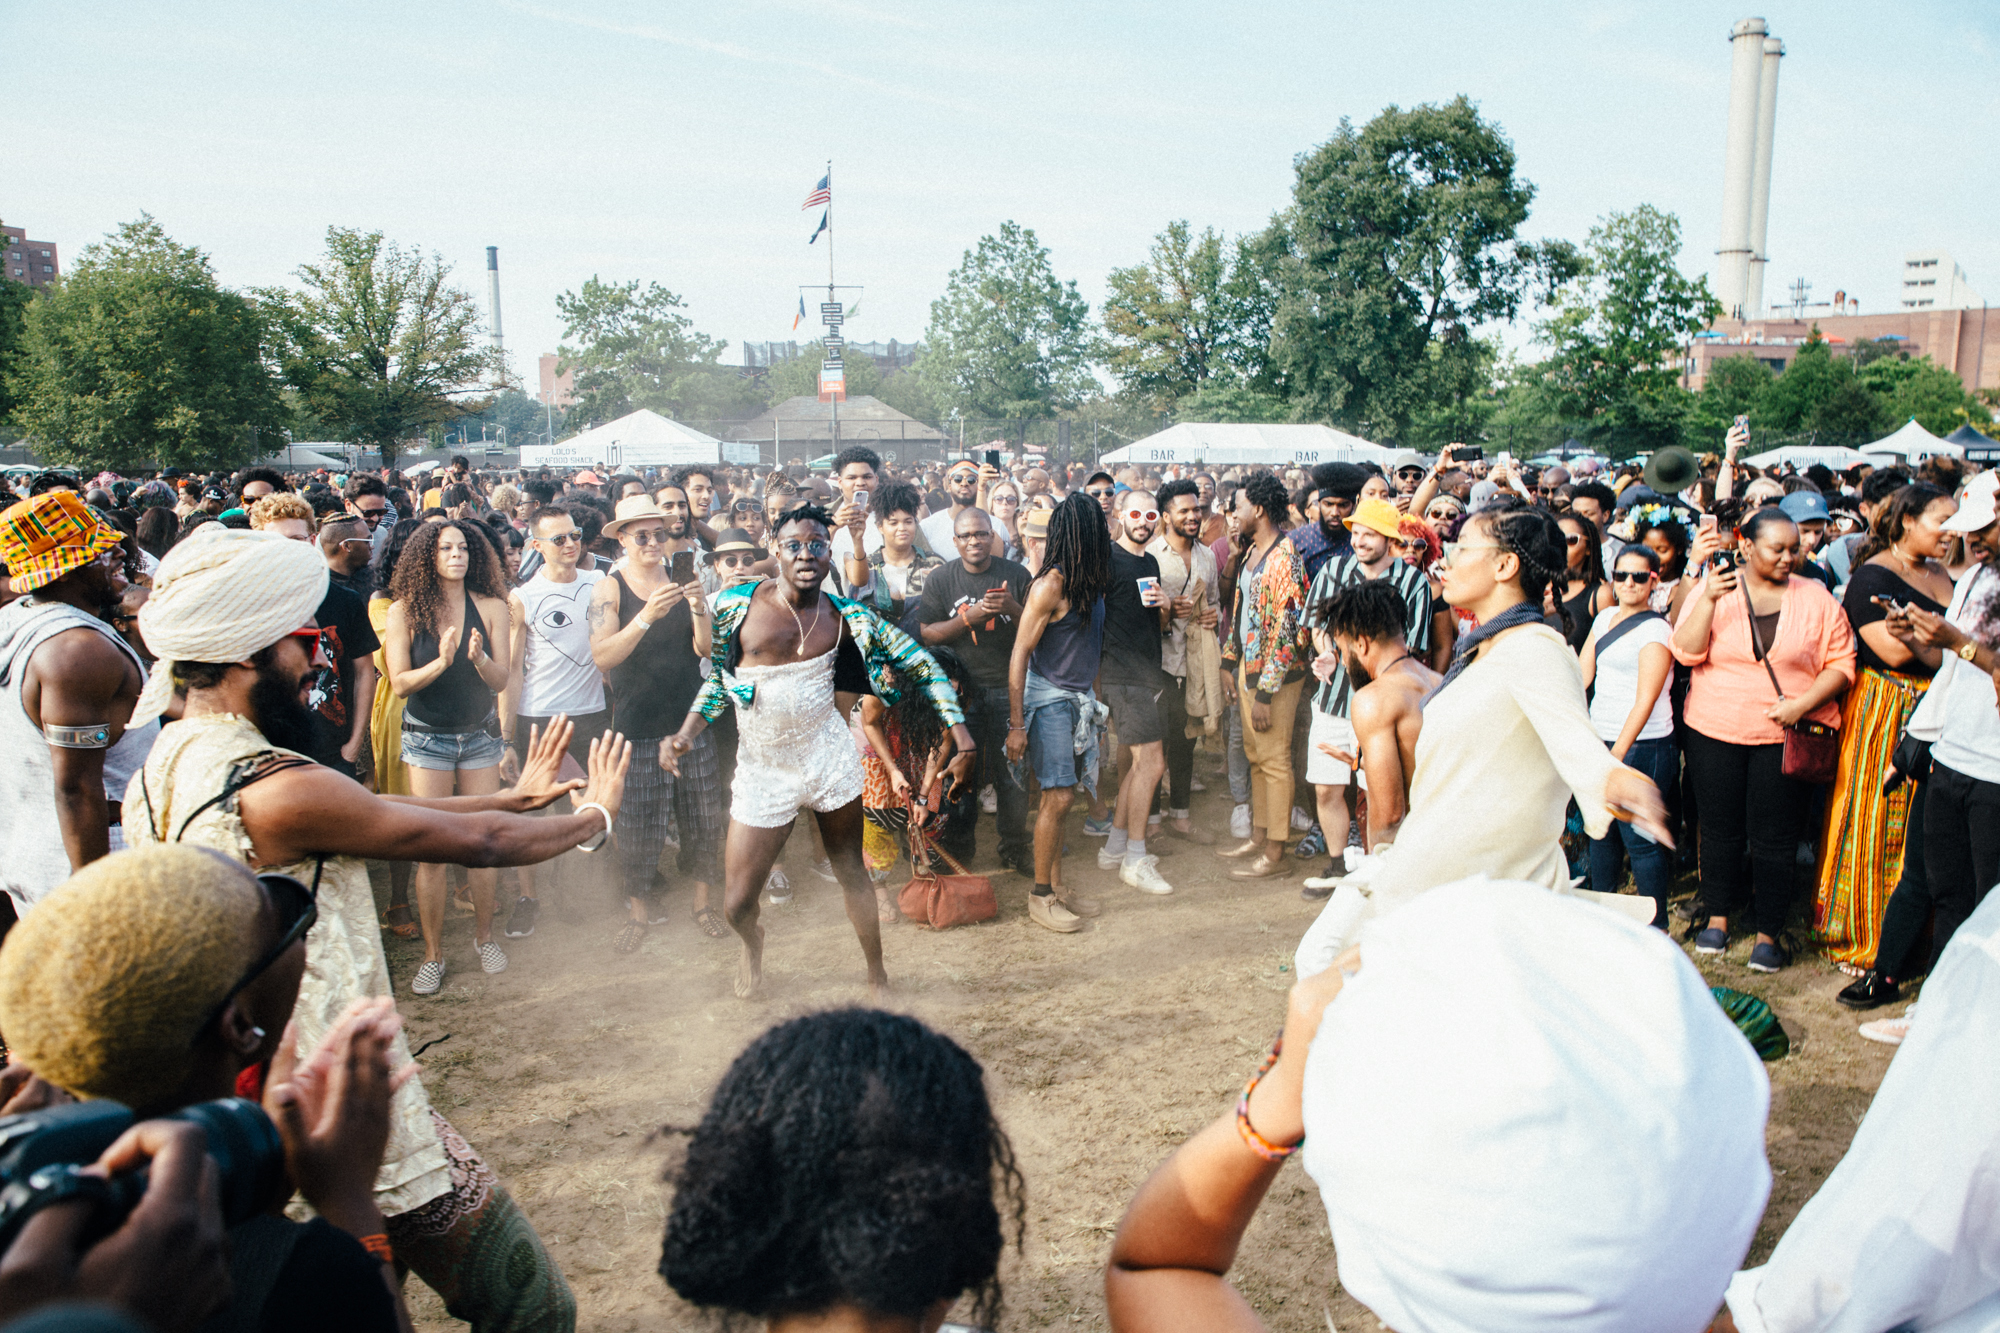 The five best things we saw at Afropunk Brooklyn on Sunday